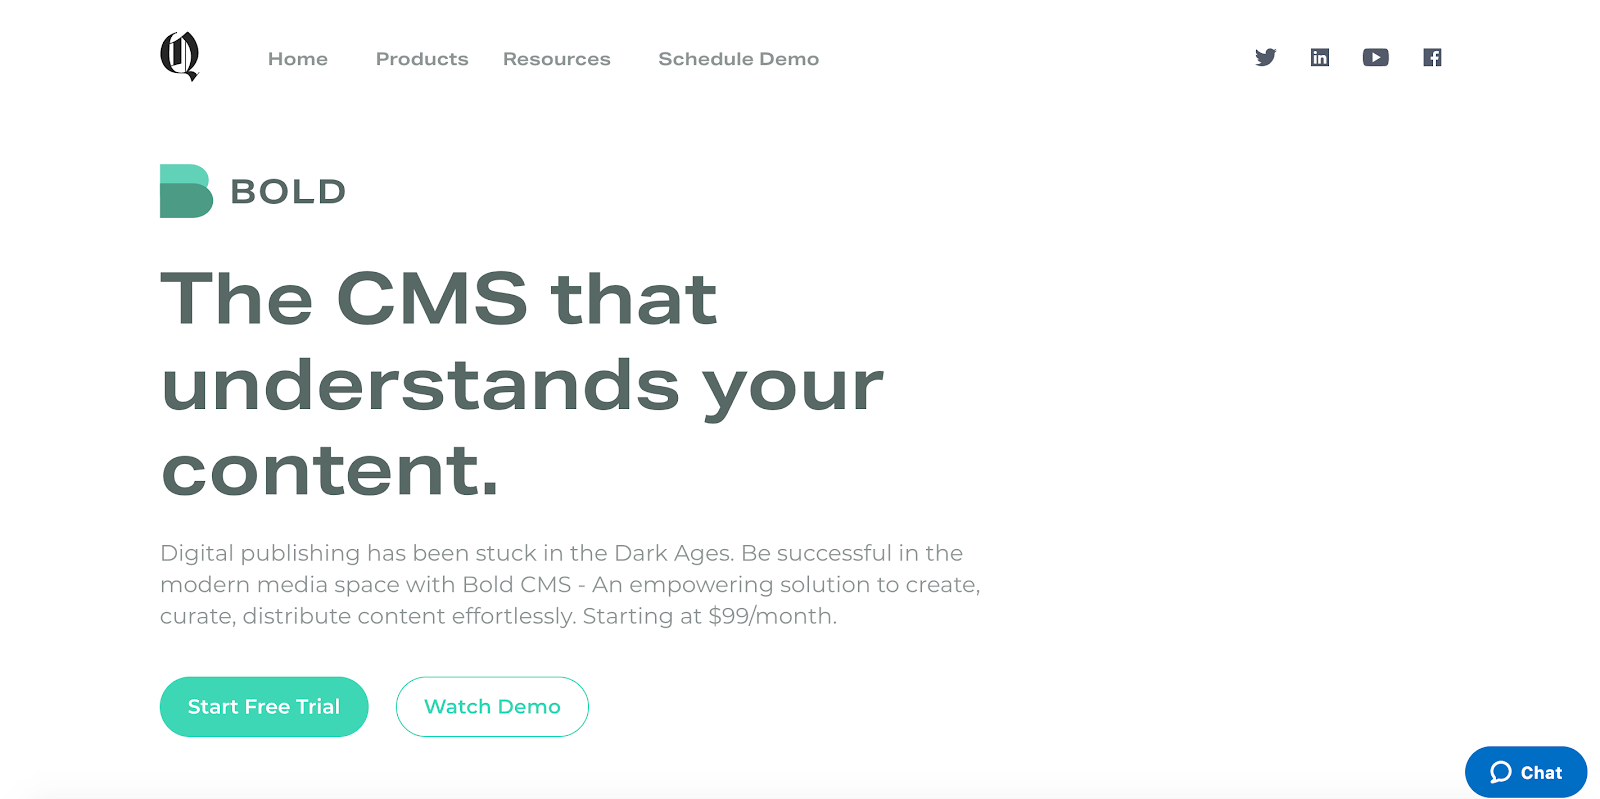 Bold CMS is a machine learning CMS based in Bangalore, India